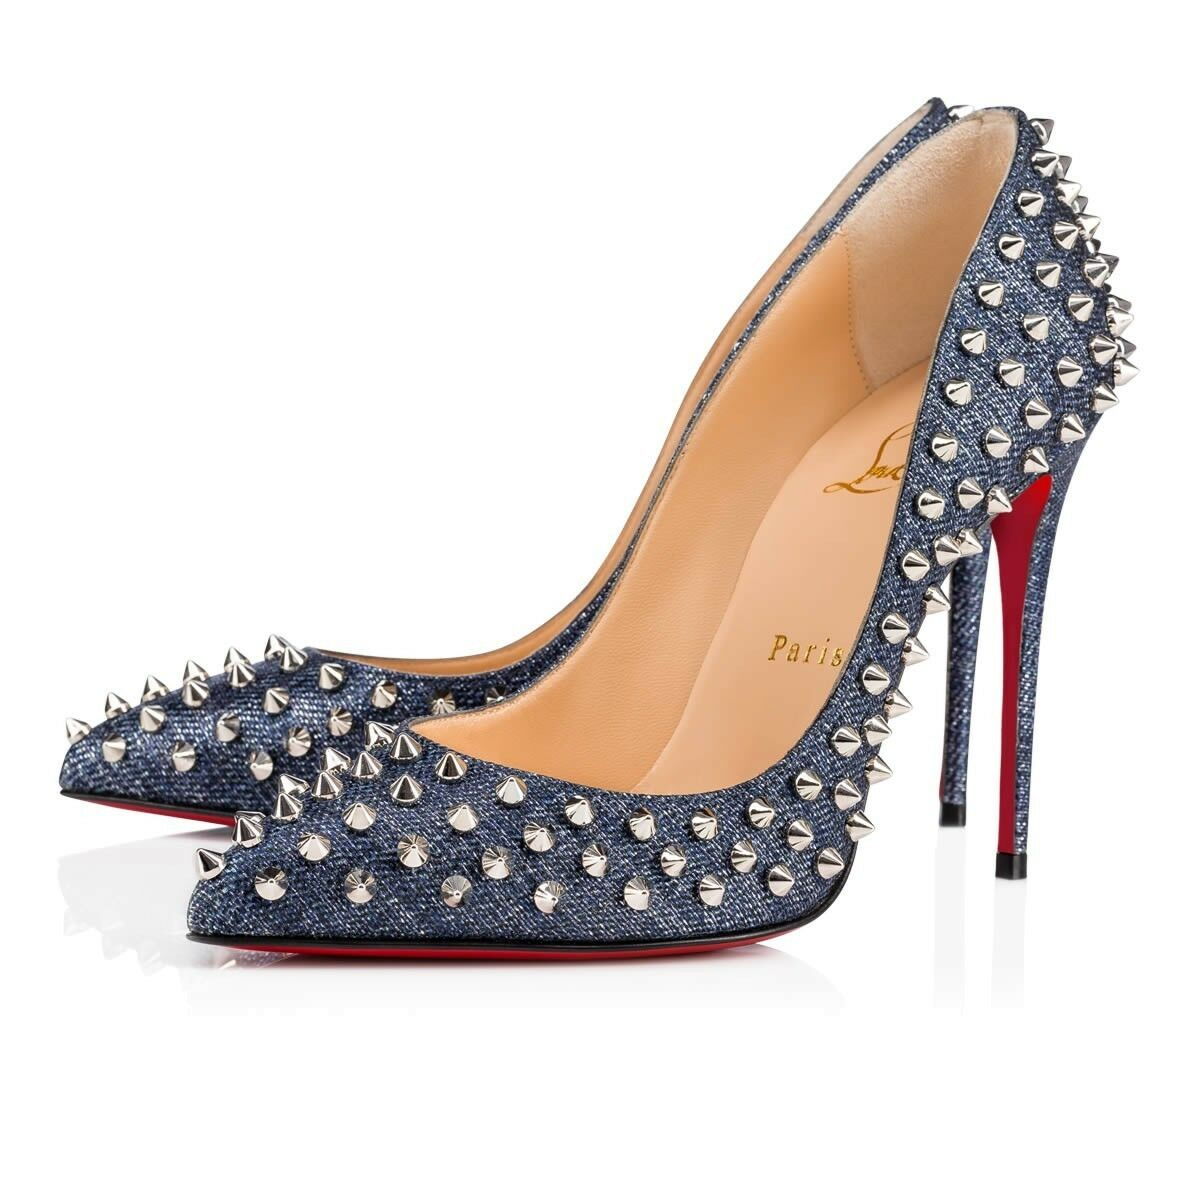 NIB Christian Louboutin Follies Spikes 100 Denim Blau Lux Pump Pigalle Heel Pump Lux 36 abd9c3